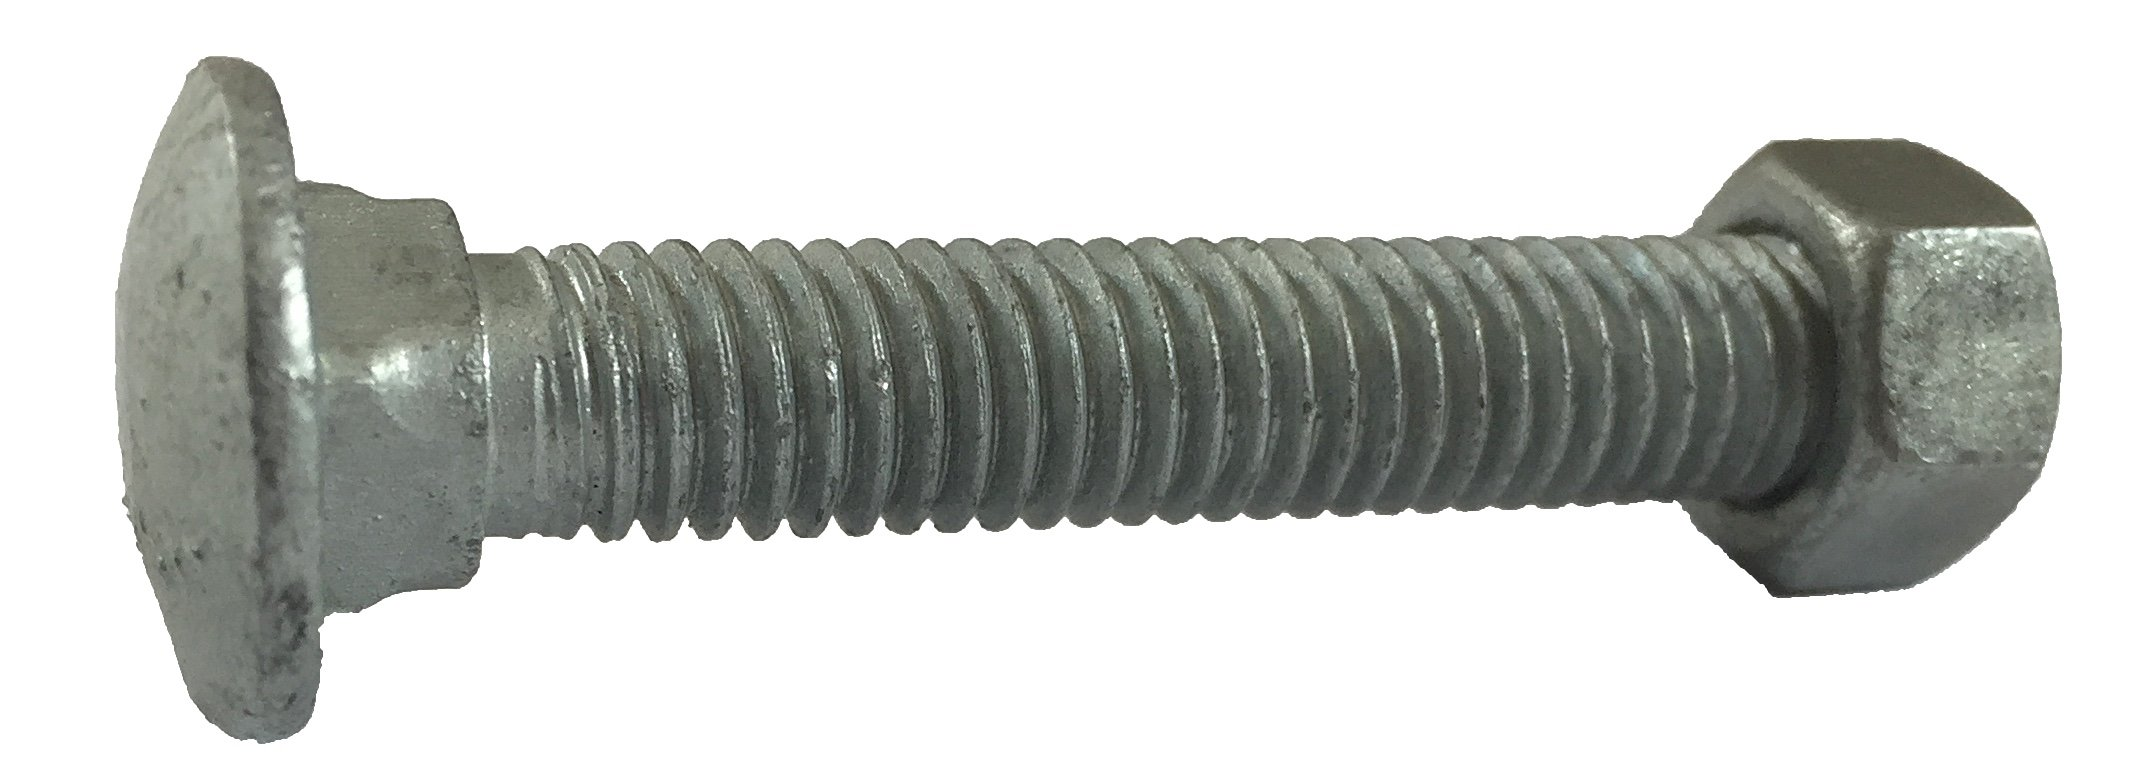 CARRIAGE BOLTS 3/8-16 x 2-1/2'': w/ NUTS Galvanized Bulk Carriage Bolt ~ Coarse Thread (2 1/2 inches long) (100 pieces) - Chain Link Fence Carriage Bolt w/Nuts